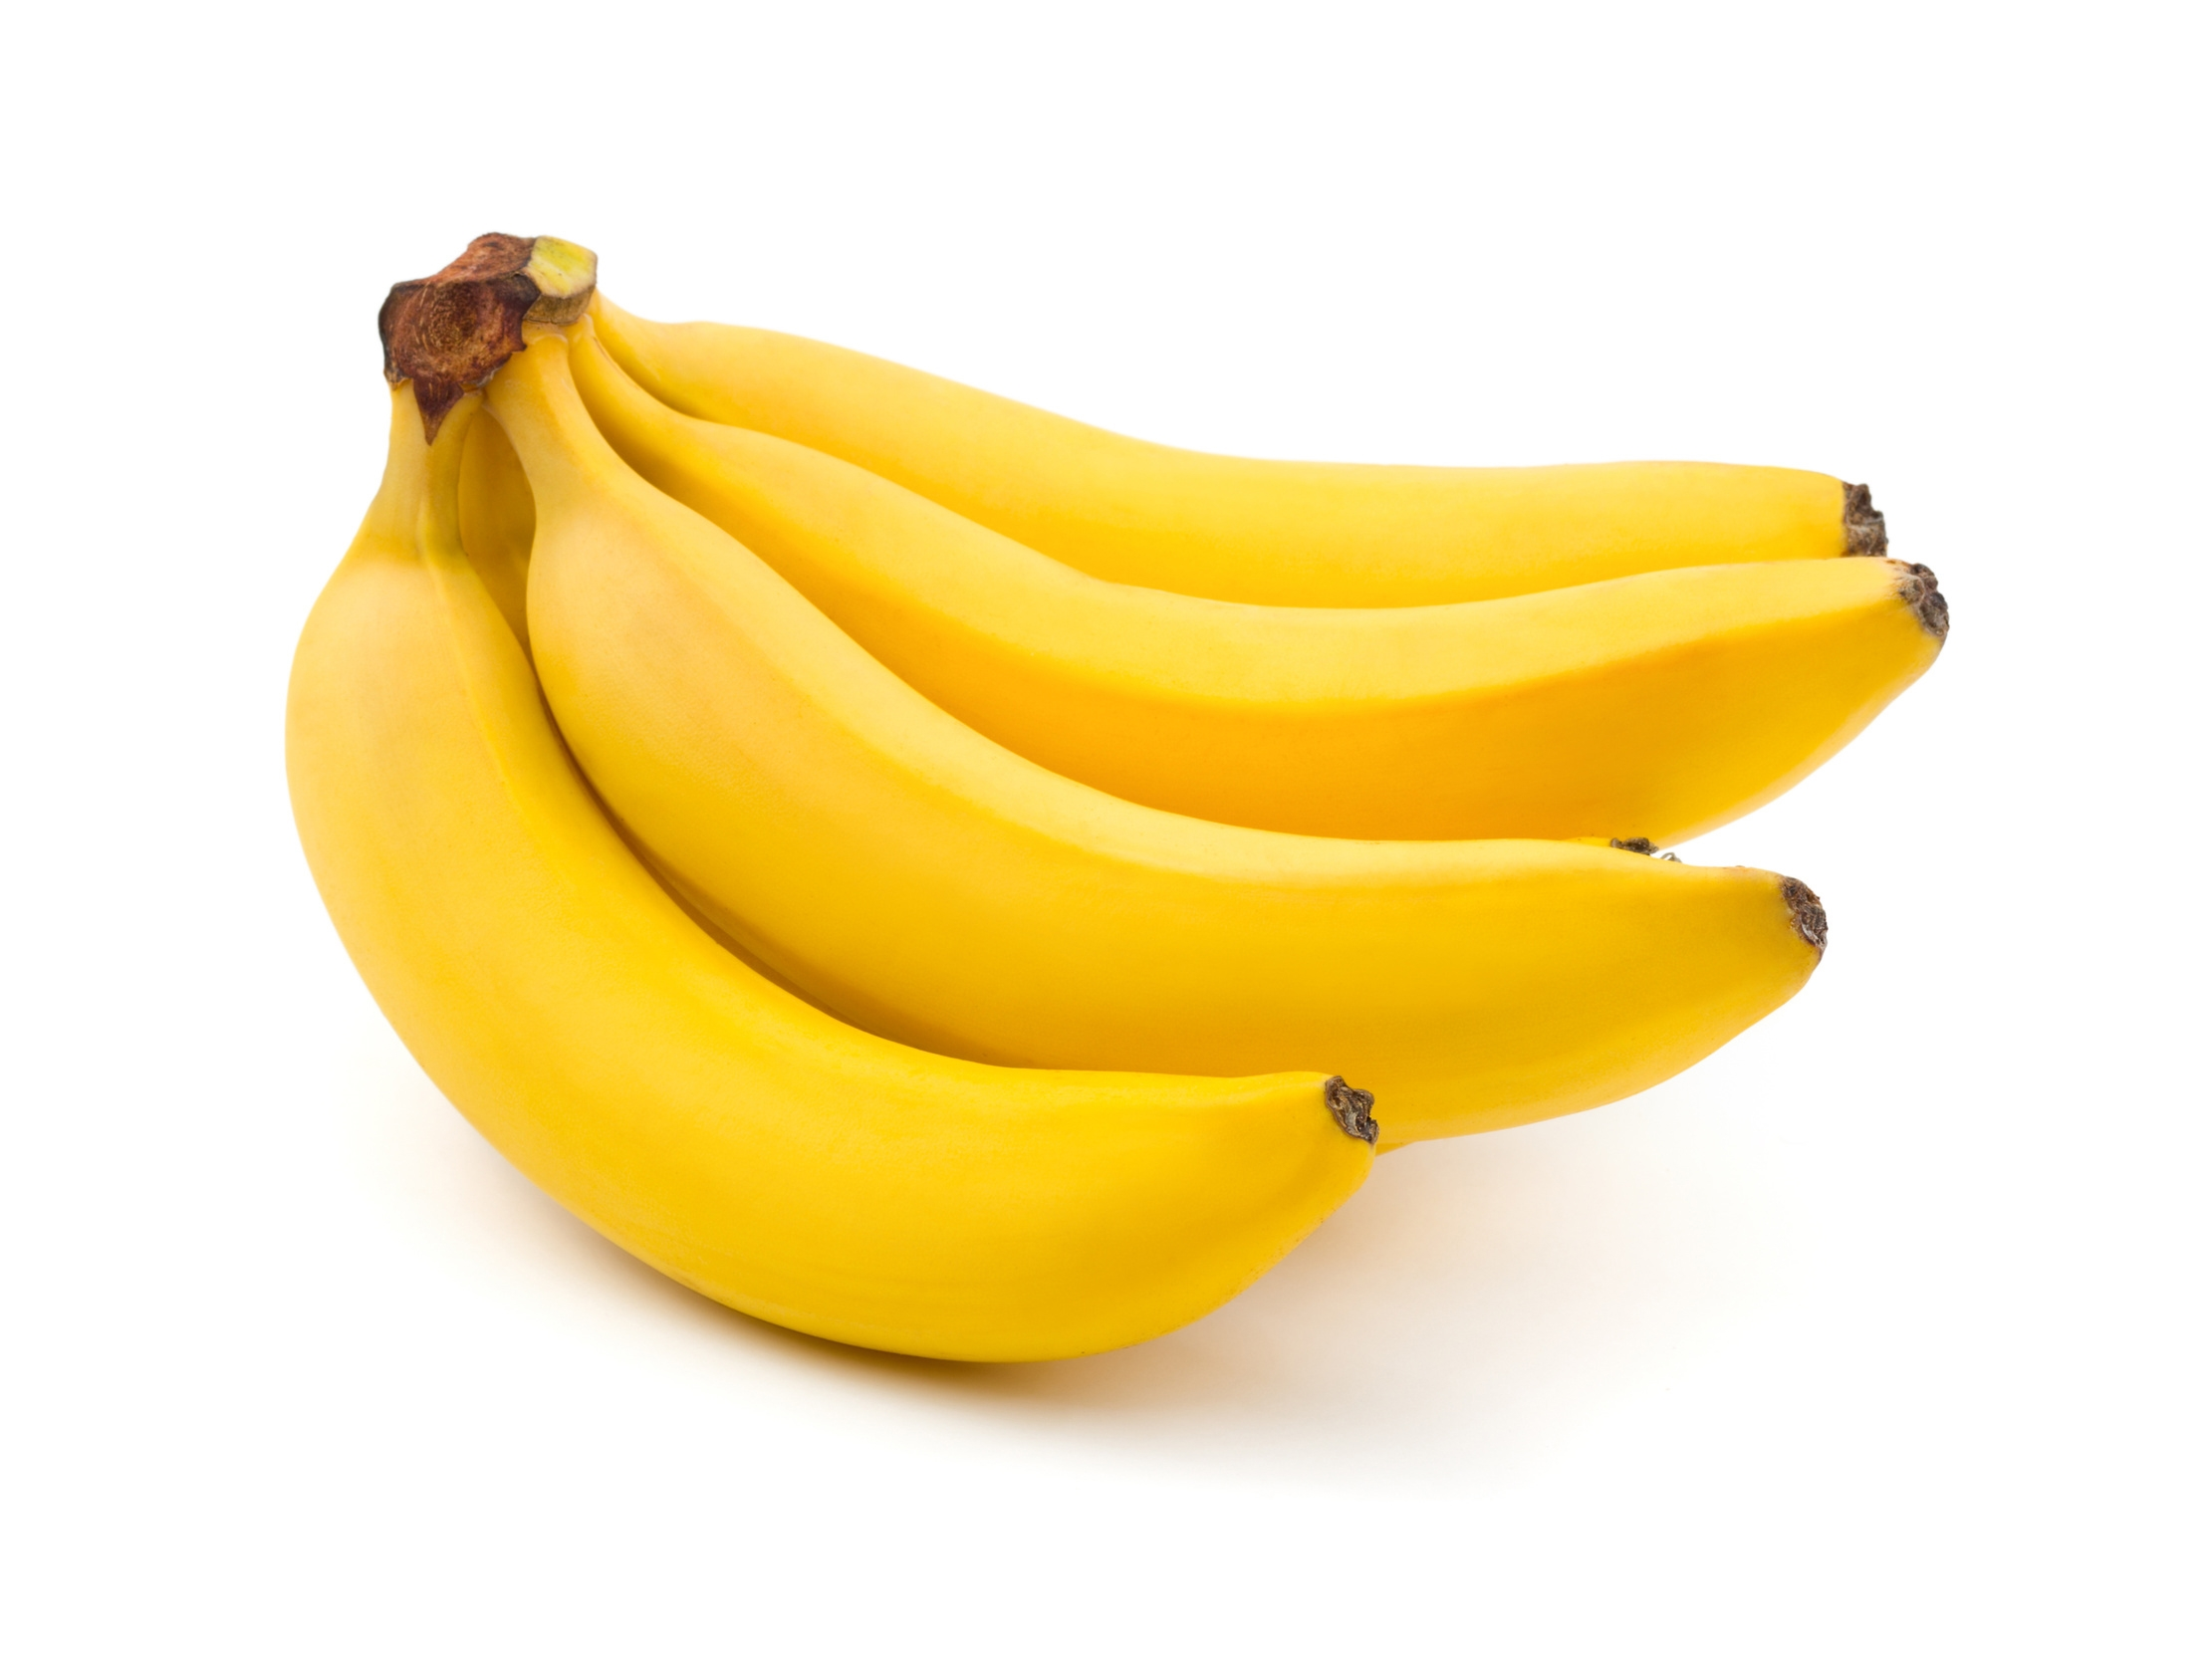 bananas hd image